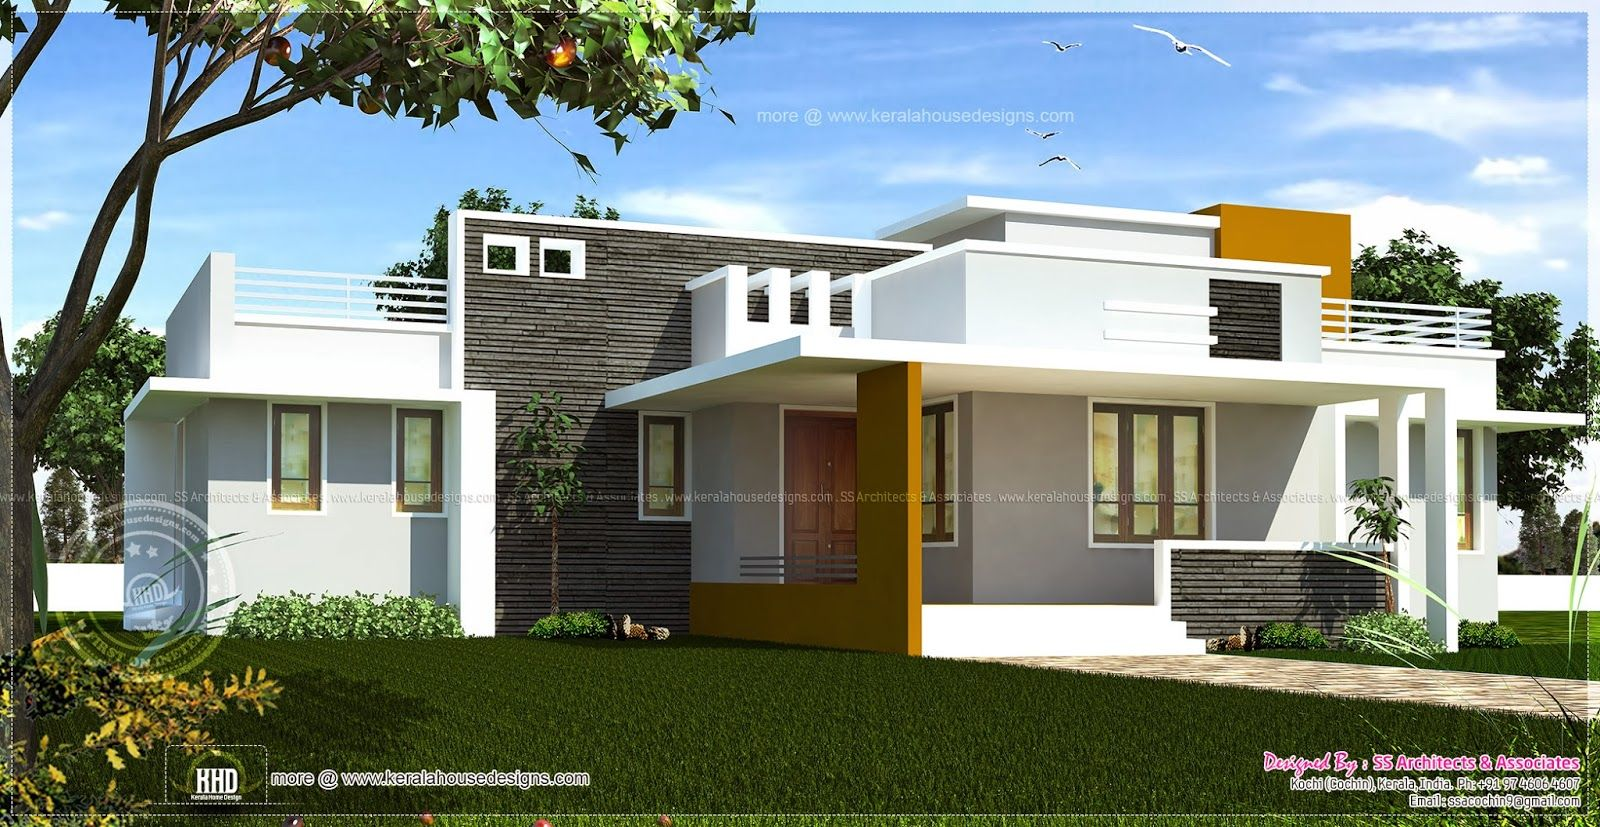 Excellent single home designs single floor contemporary for Single story modern home design